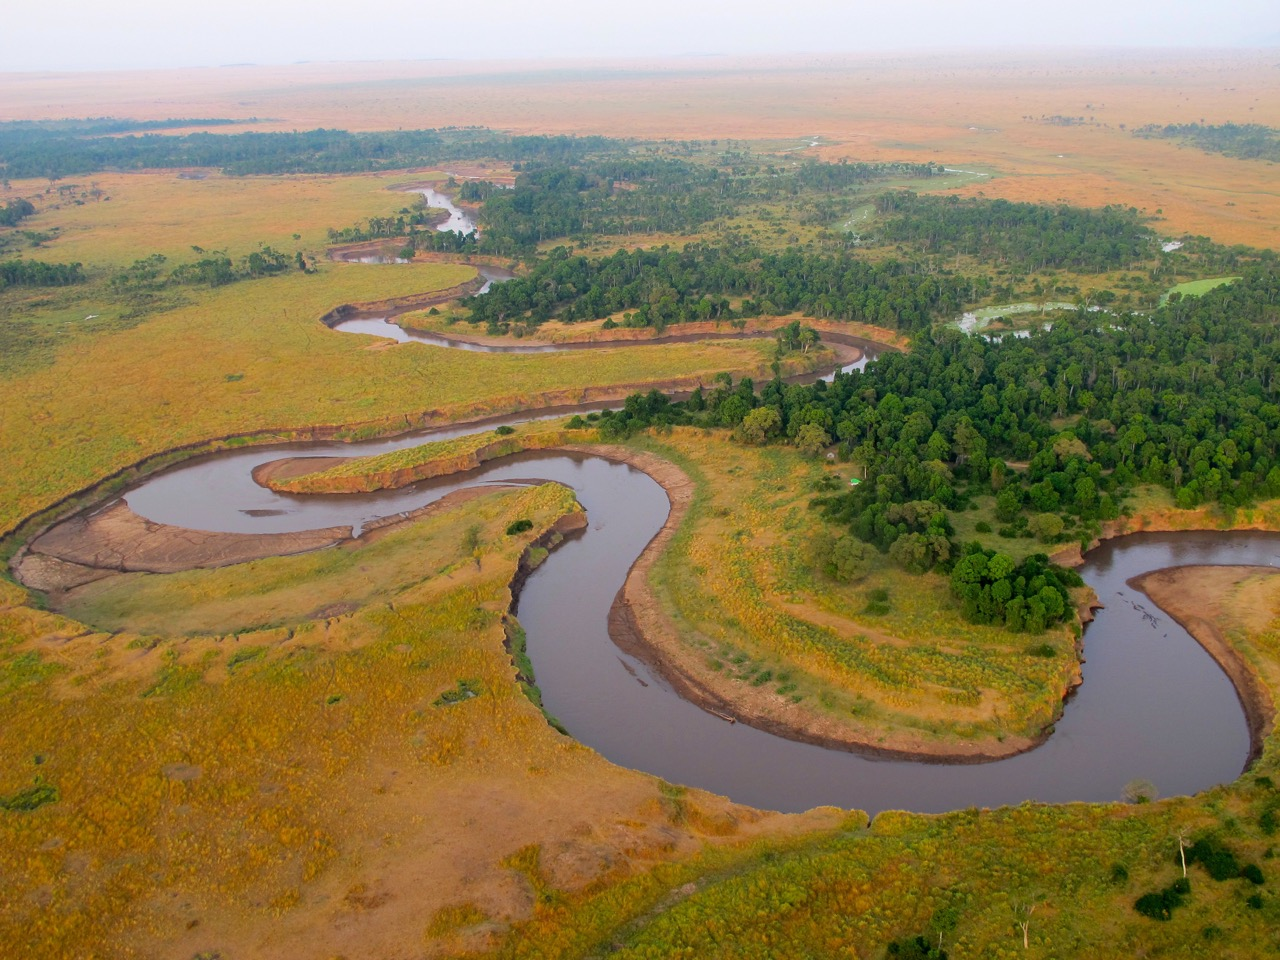 wildlife watching in Kenya's Masaii Mara from a hot-air ballon